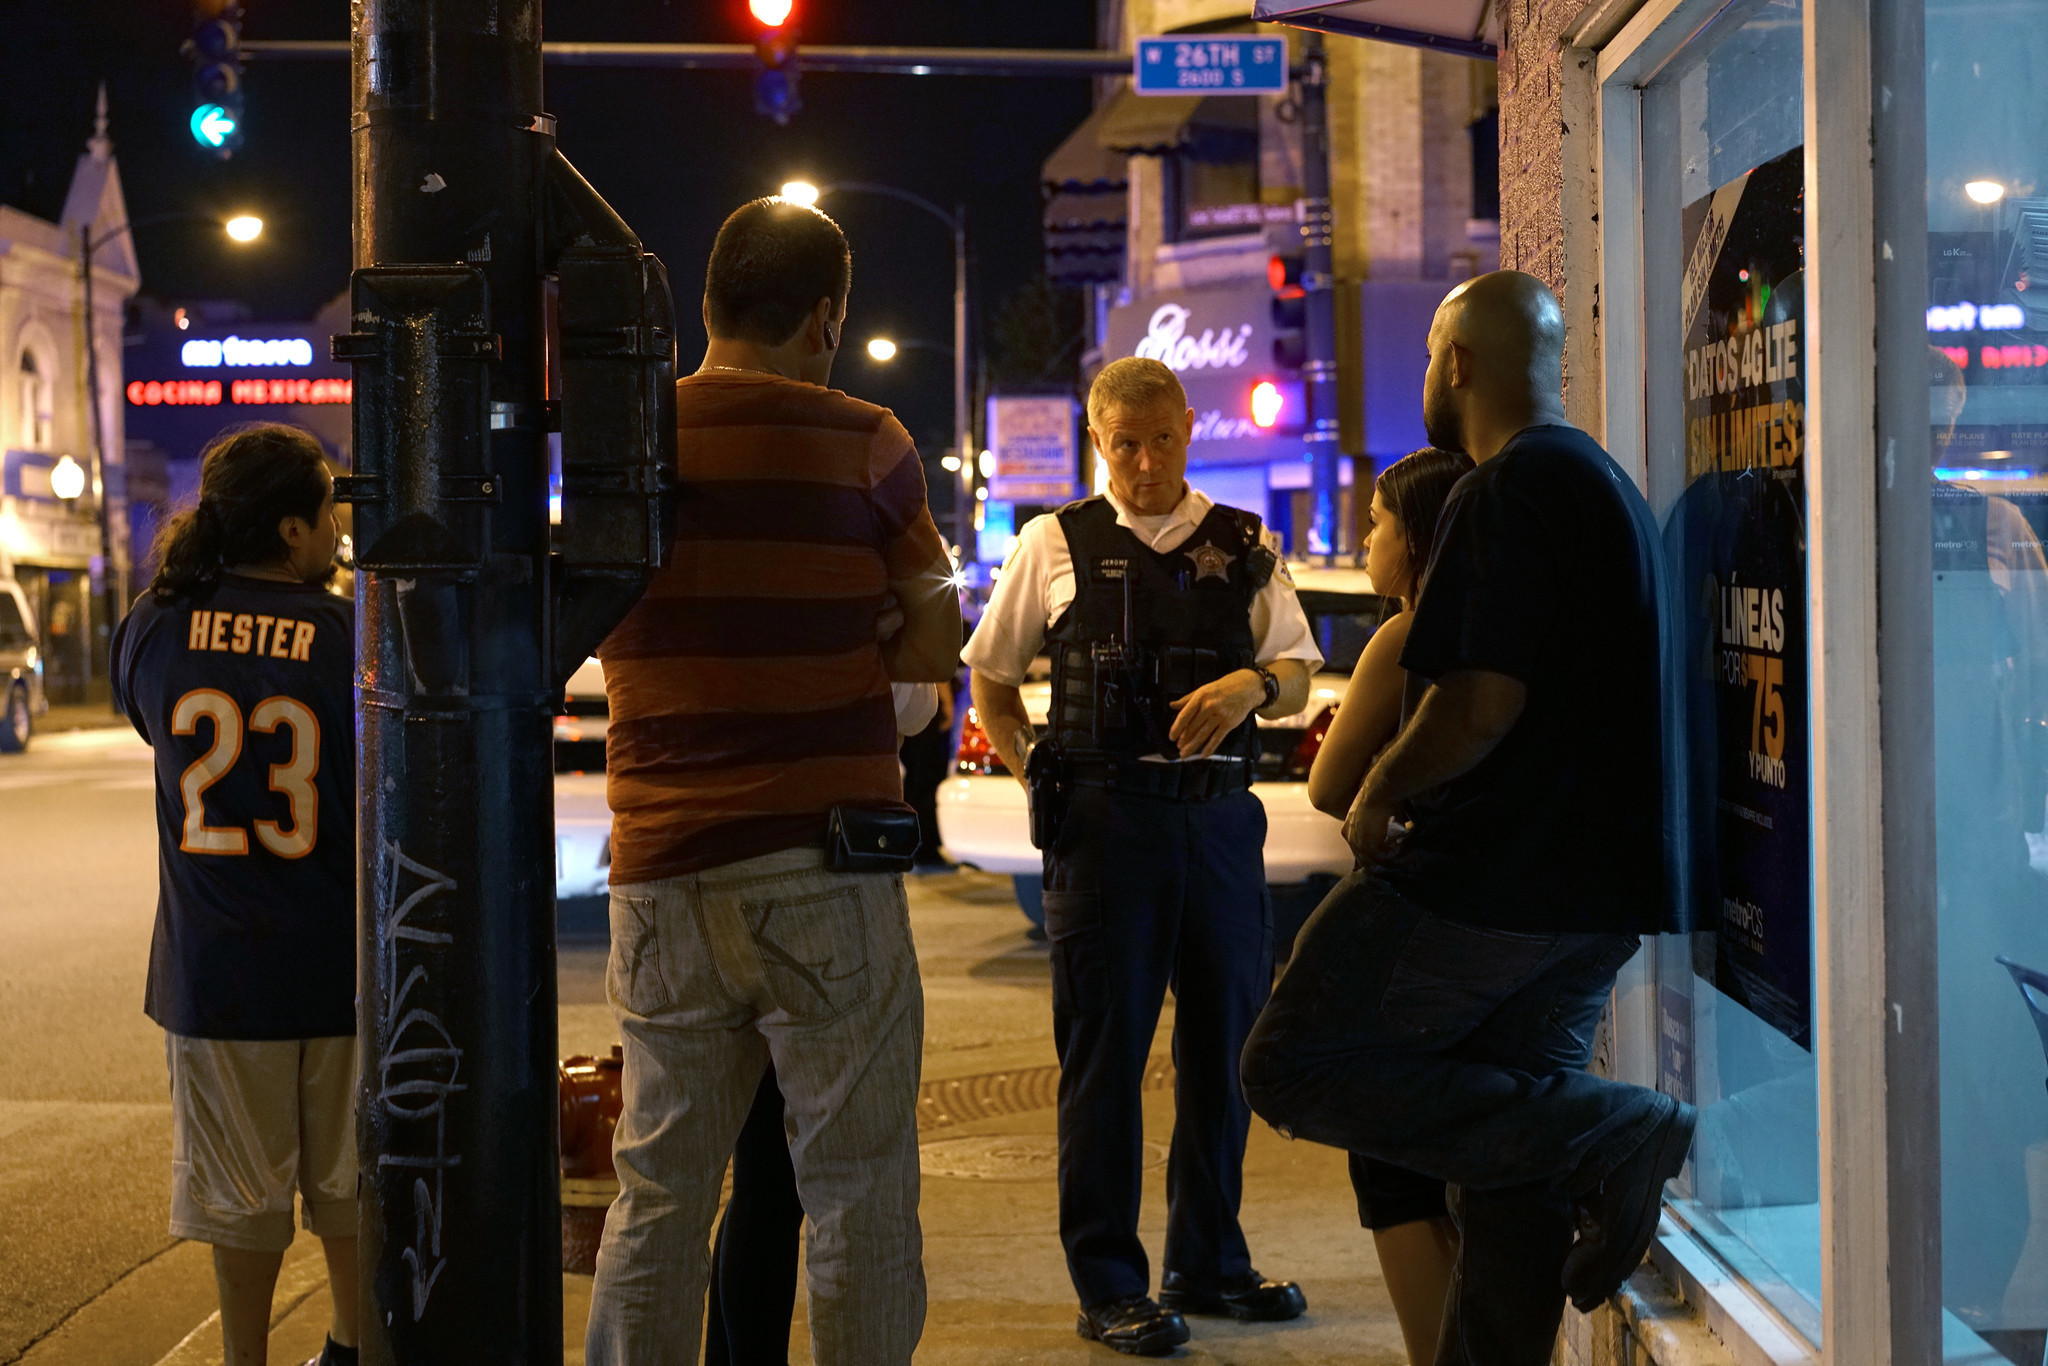 No one hurt when police officers fire shots in Little Village